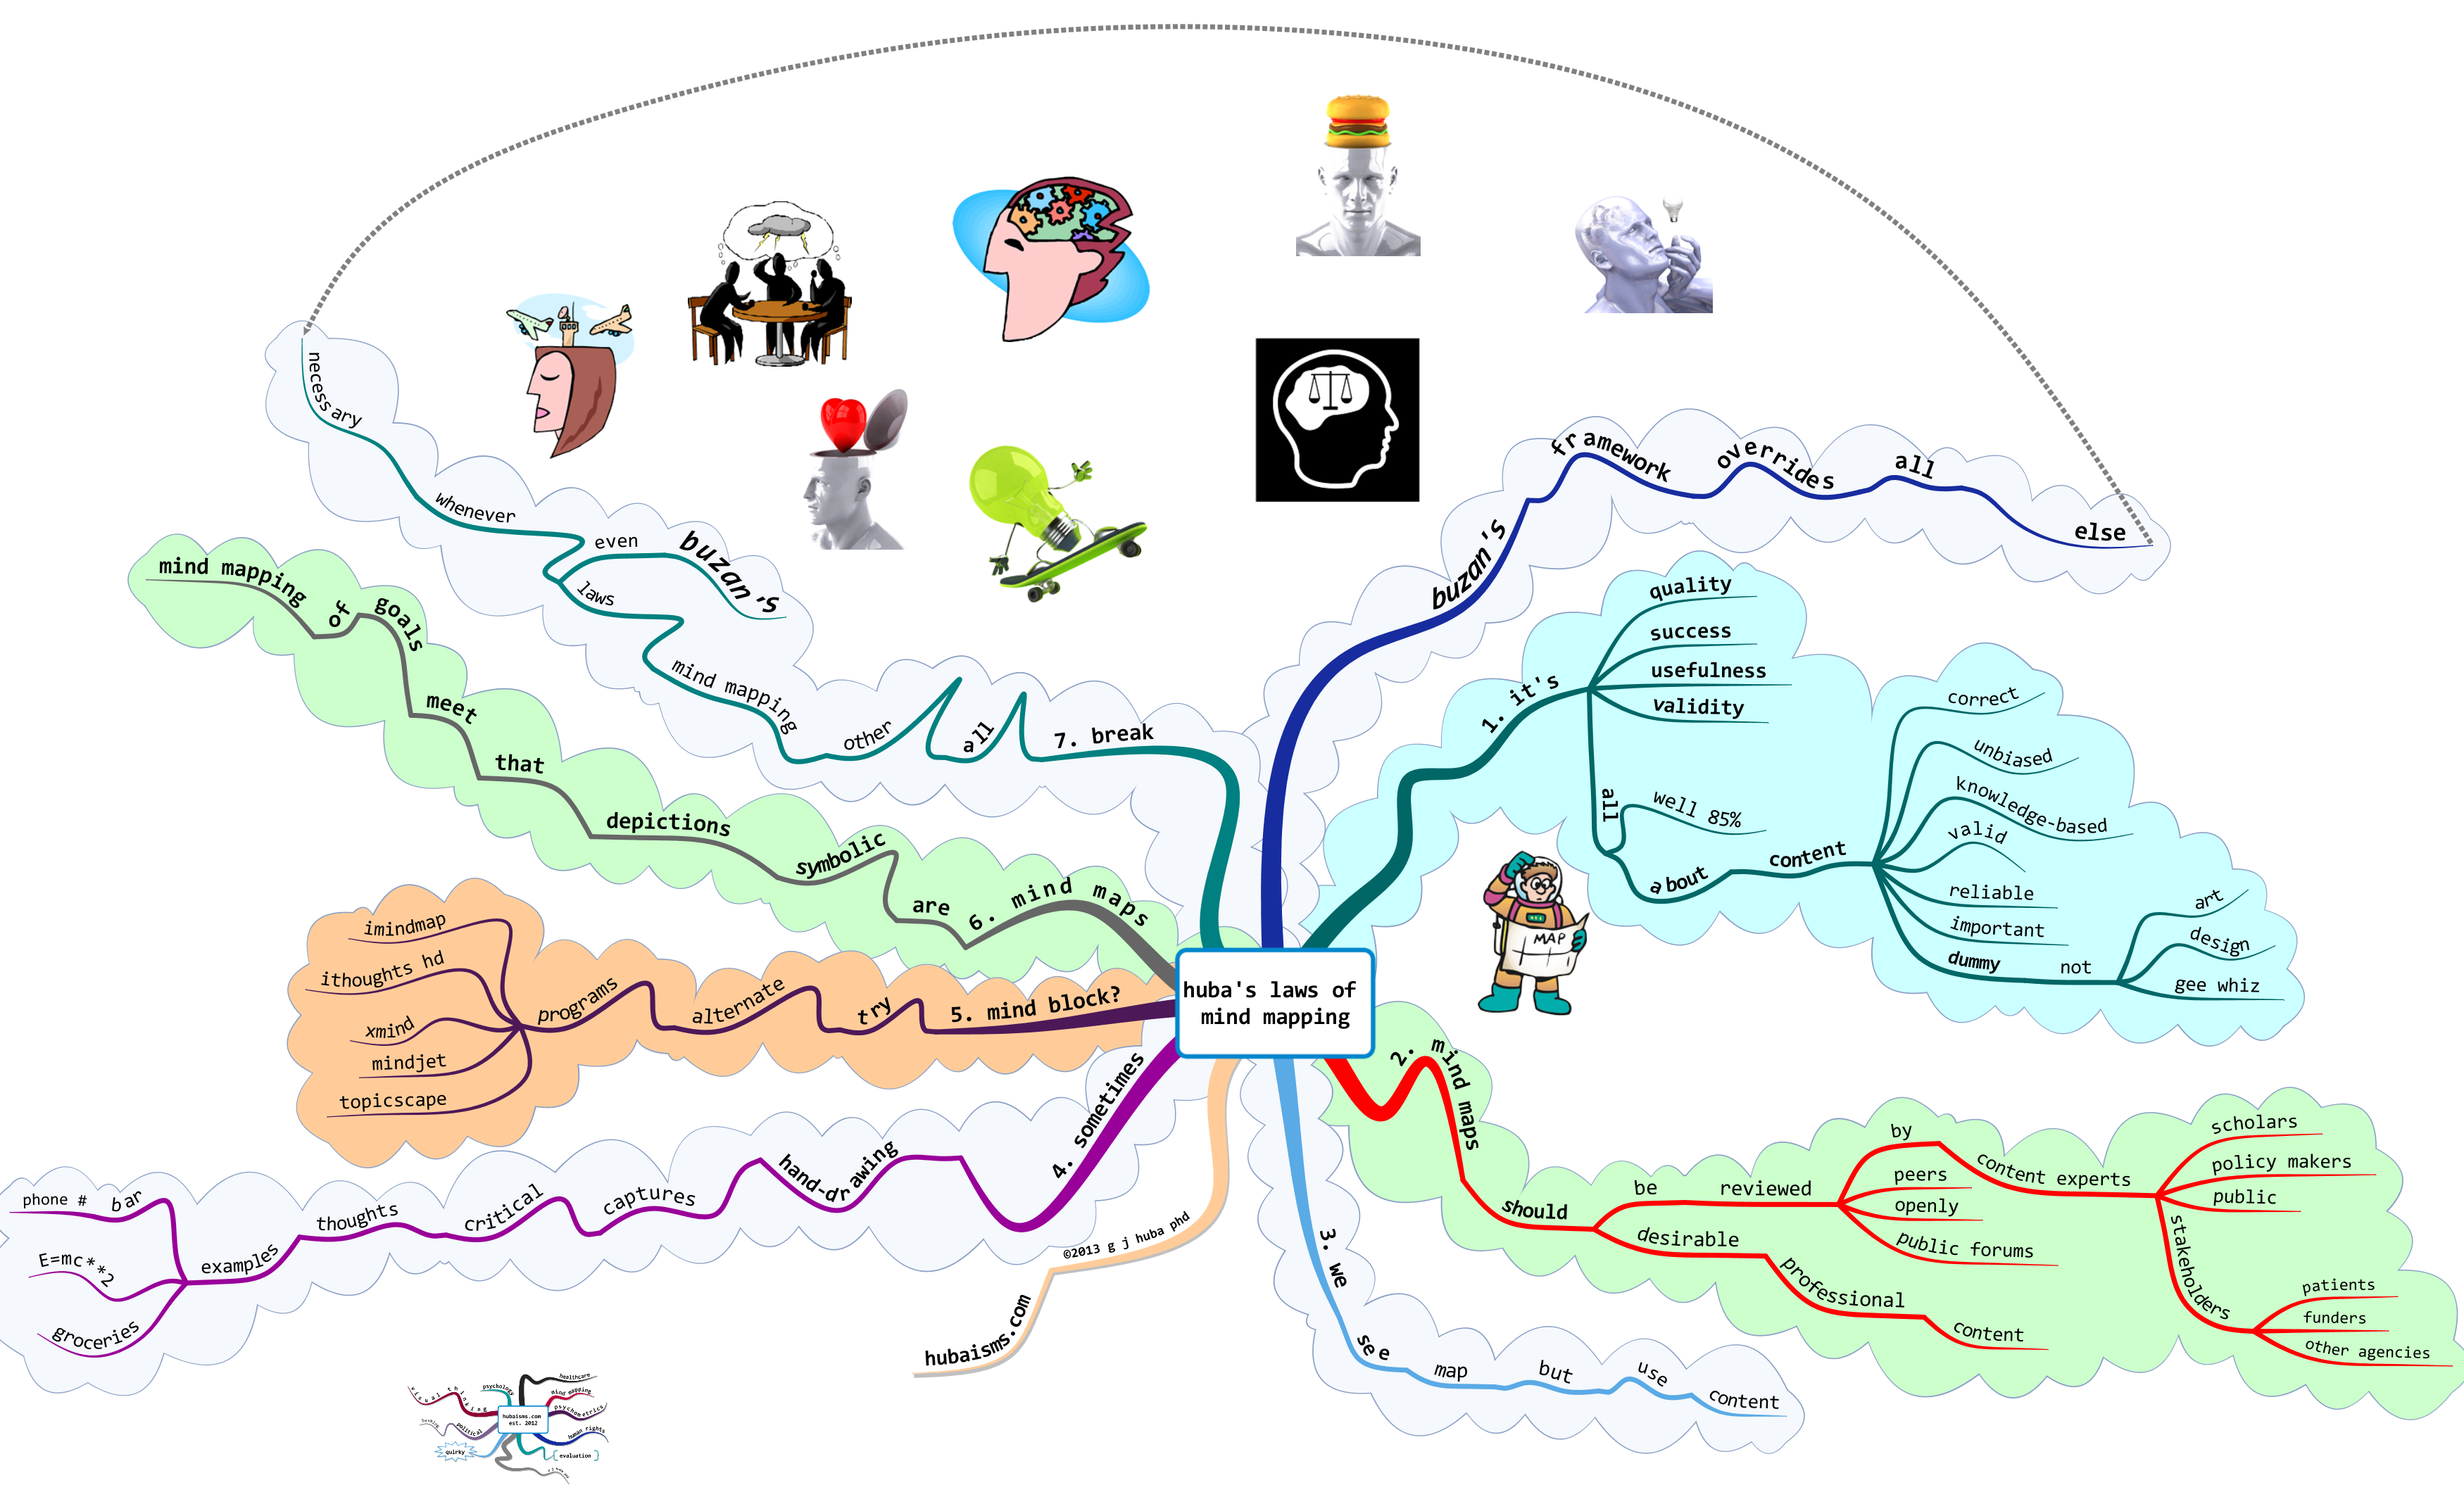 huba's laws of  mind mapping